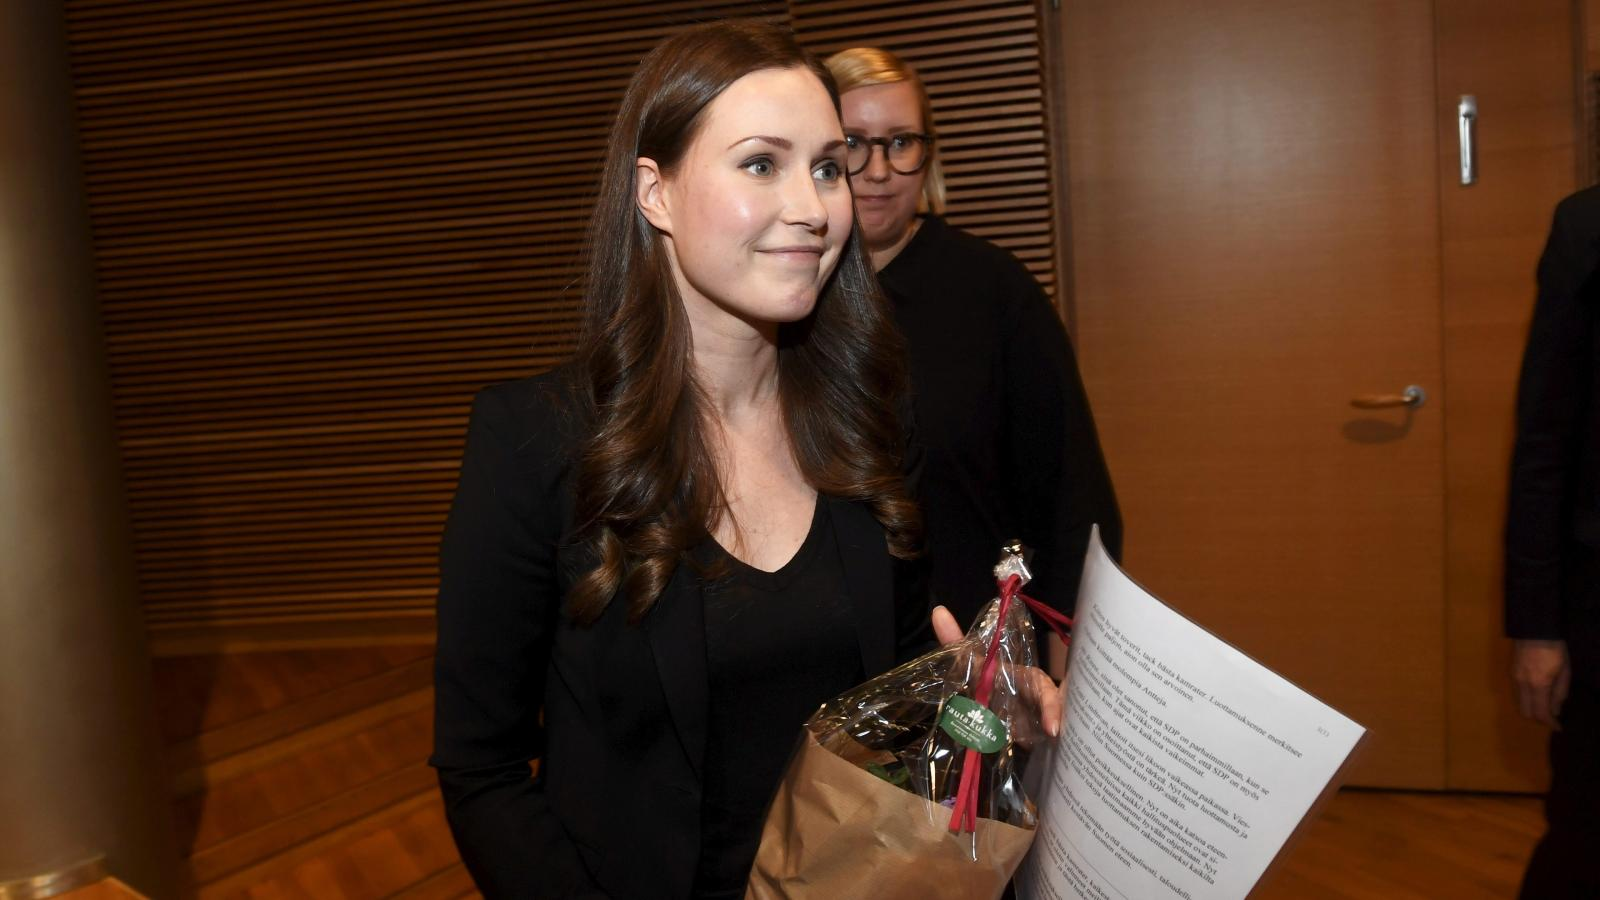 Finland elects Sanna Marin, the youngest-ever Prime Minister